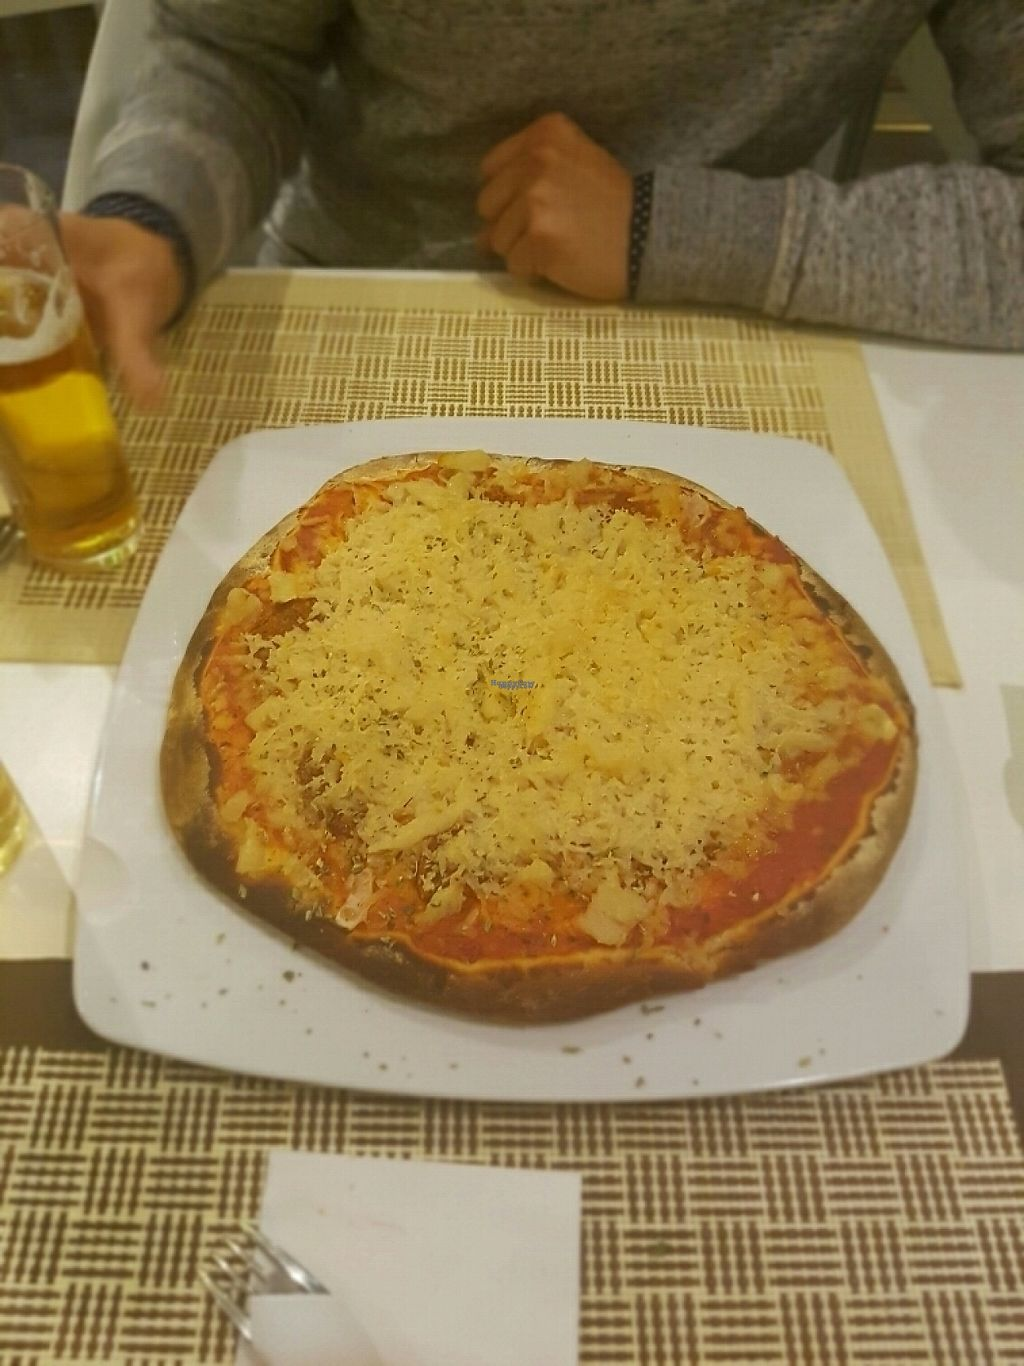 """Photo of El Oju  by <a href=""""/members/profile/LuisEcijaGamez"""">LuisEcijaGamez</a> <br/>pizza diavola <br/> January 2, 2017  - <a href='/contact/abuse/image/54557/207307'>Report</a>"""